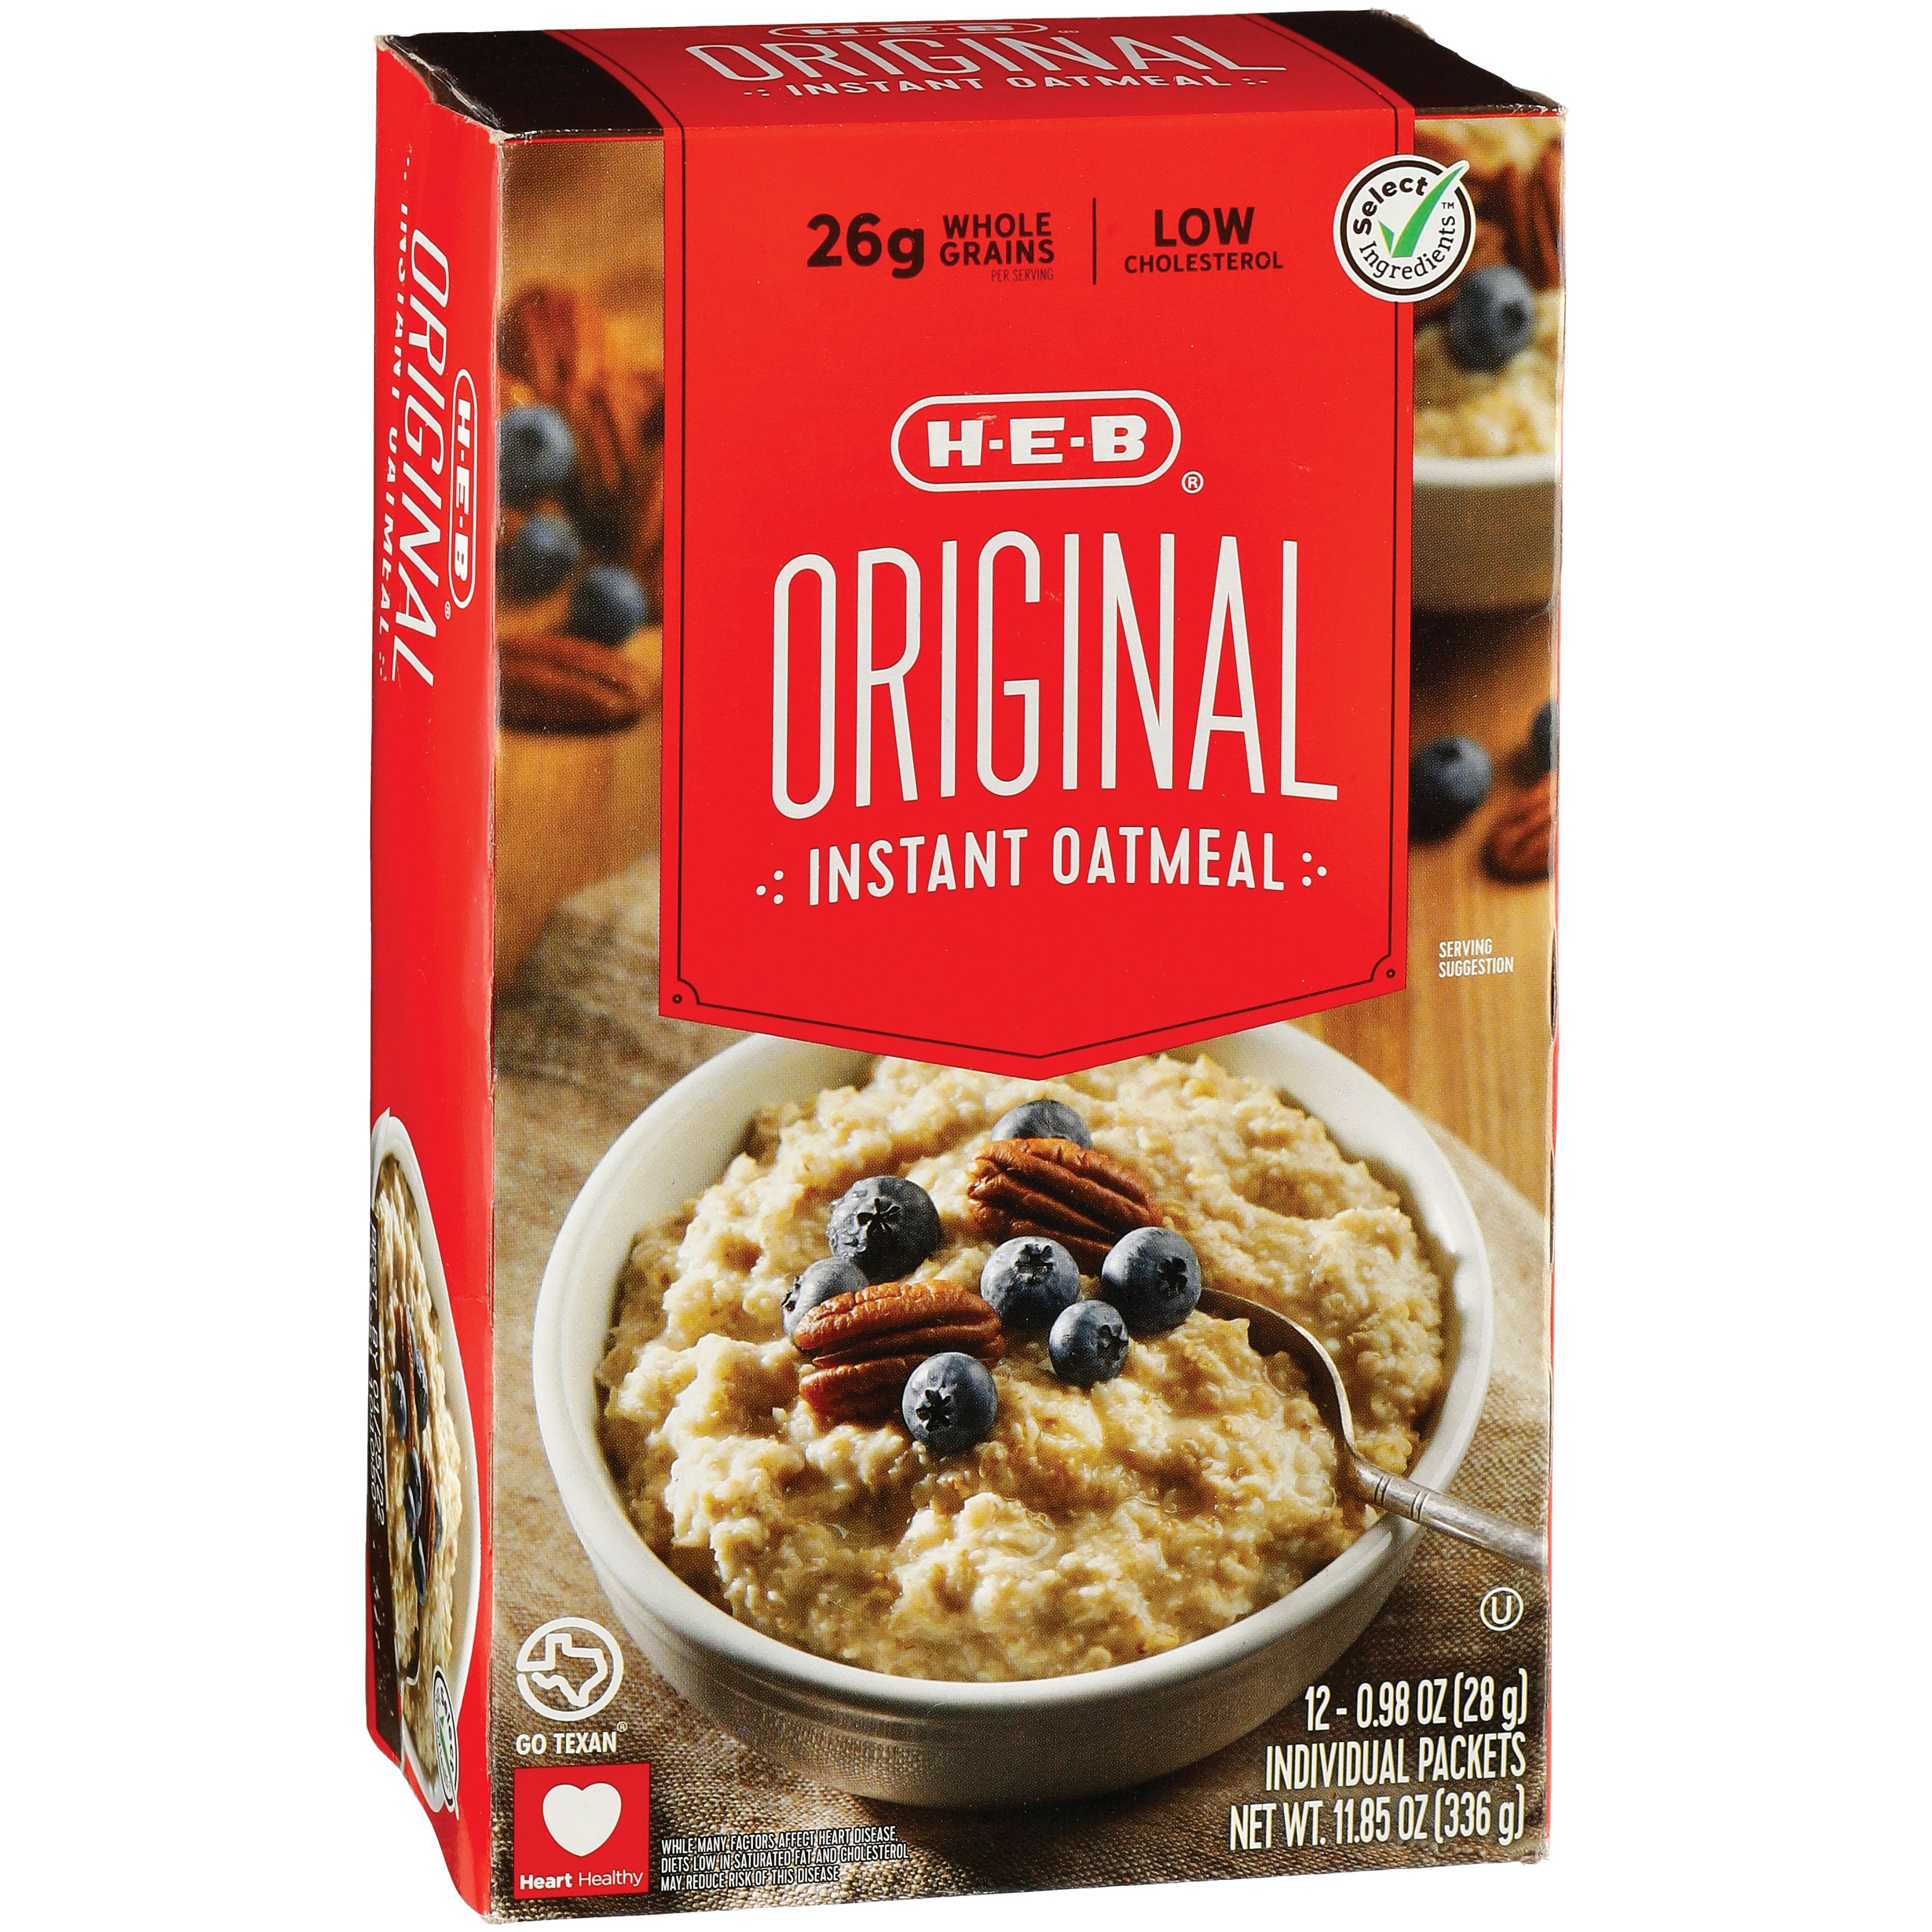 oatmeal shop heb everyday low prices online